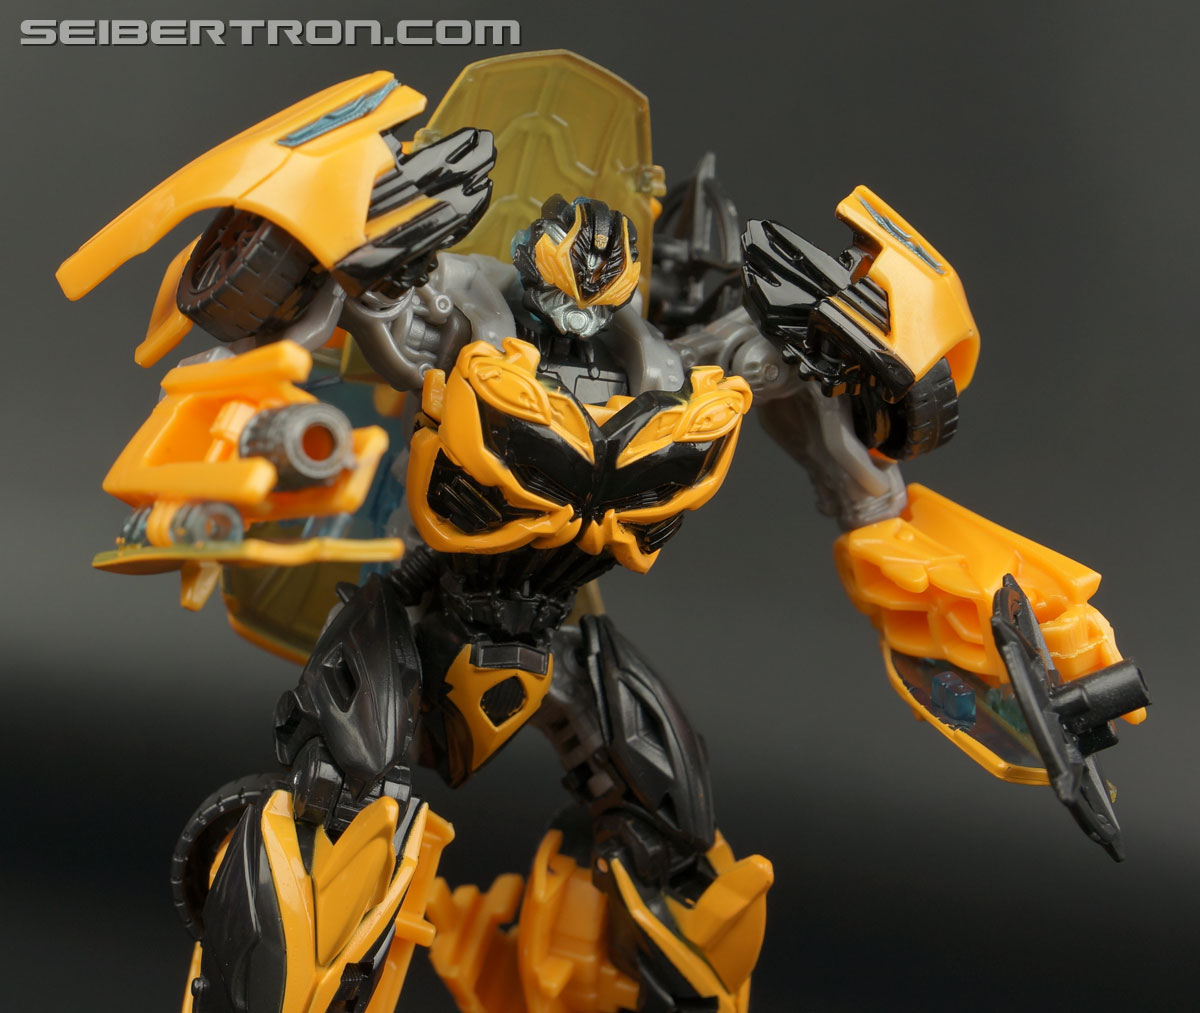 Transformers Age of Extinction: Generations Bumblebee (Image #98 of 190)